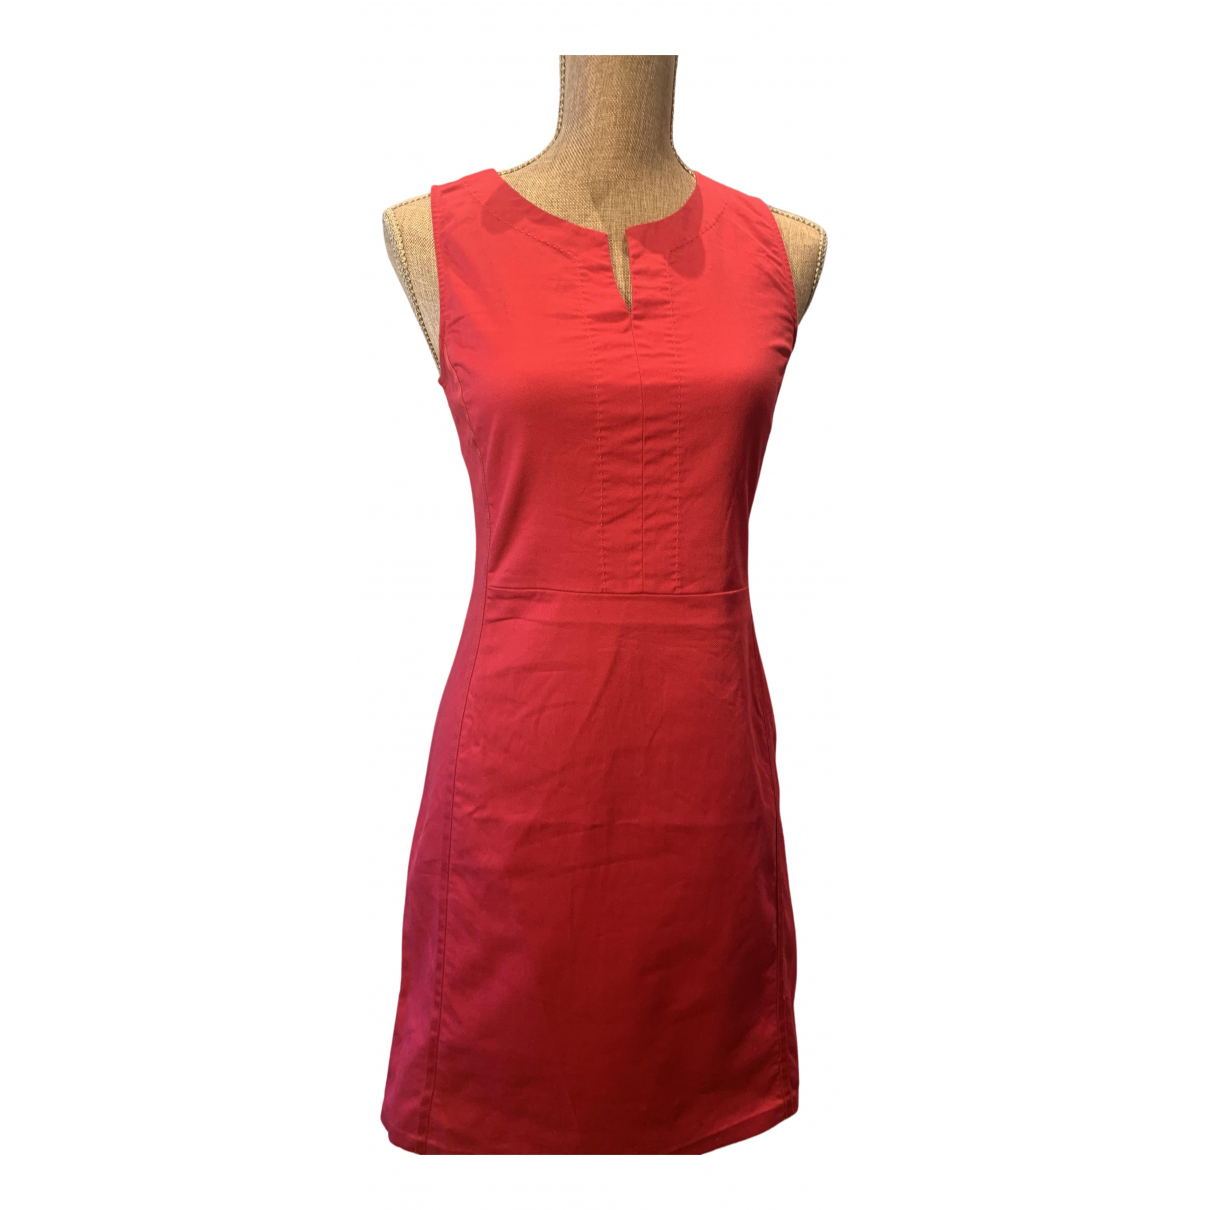 Emporio Armani N Red Cotton dress for Women 36 FR